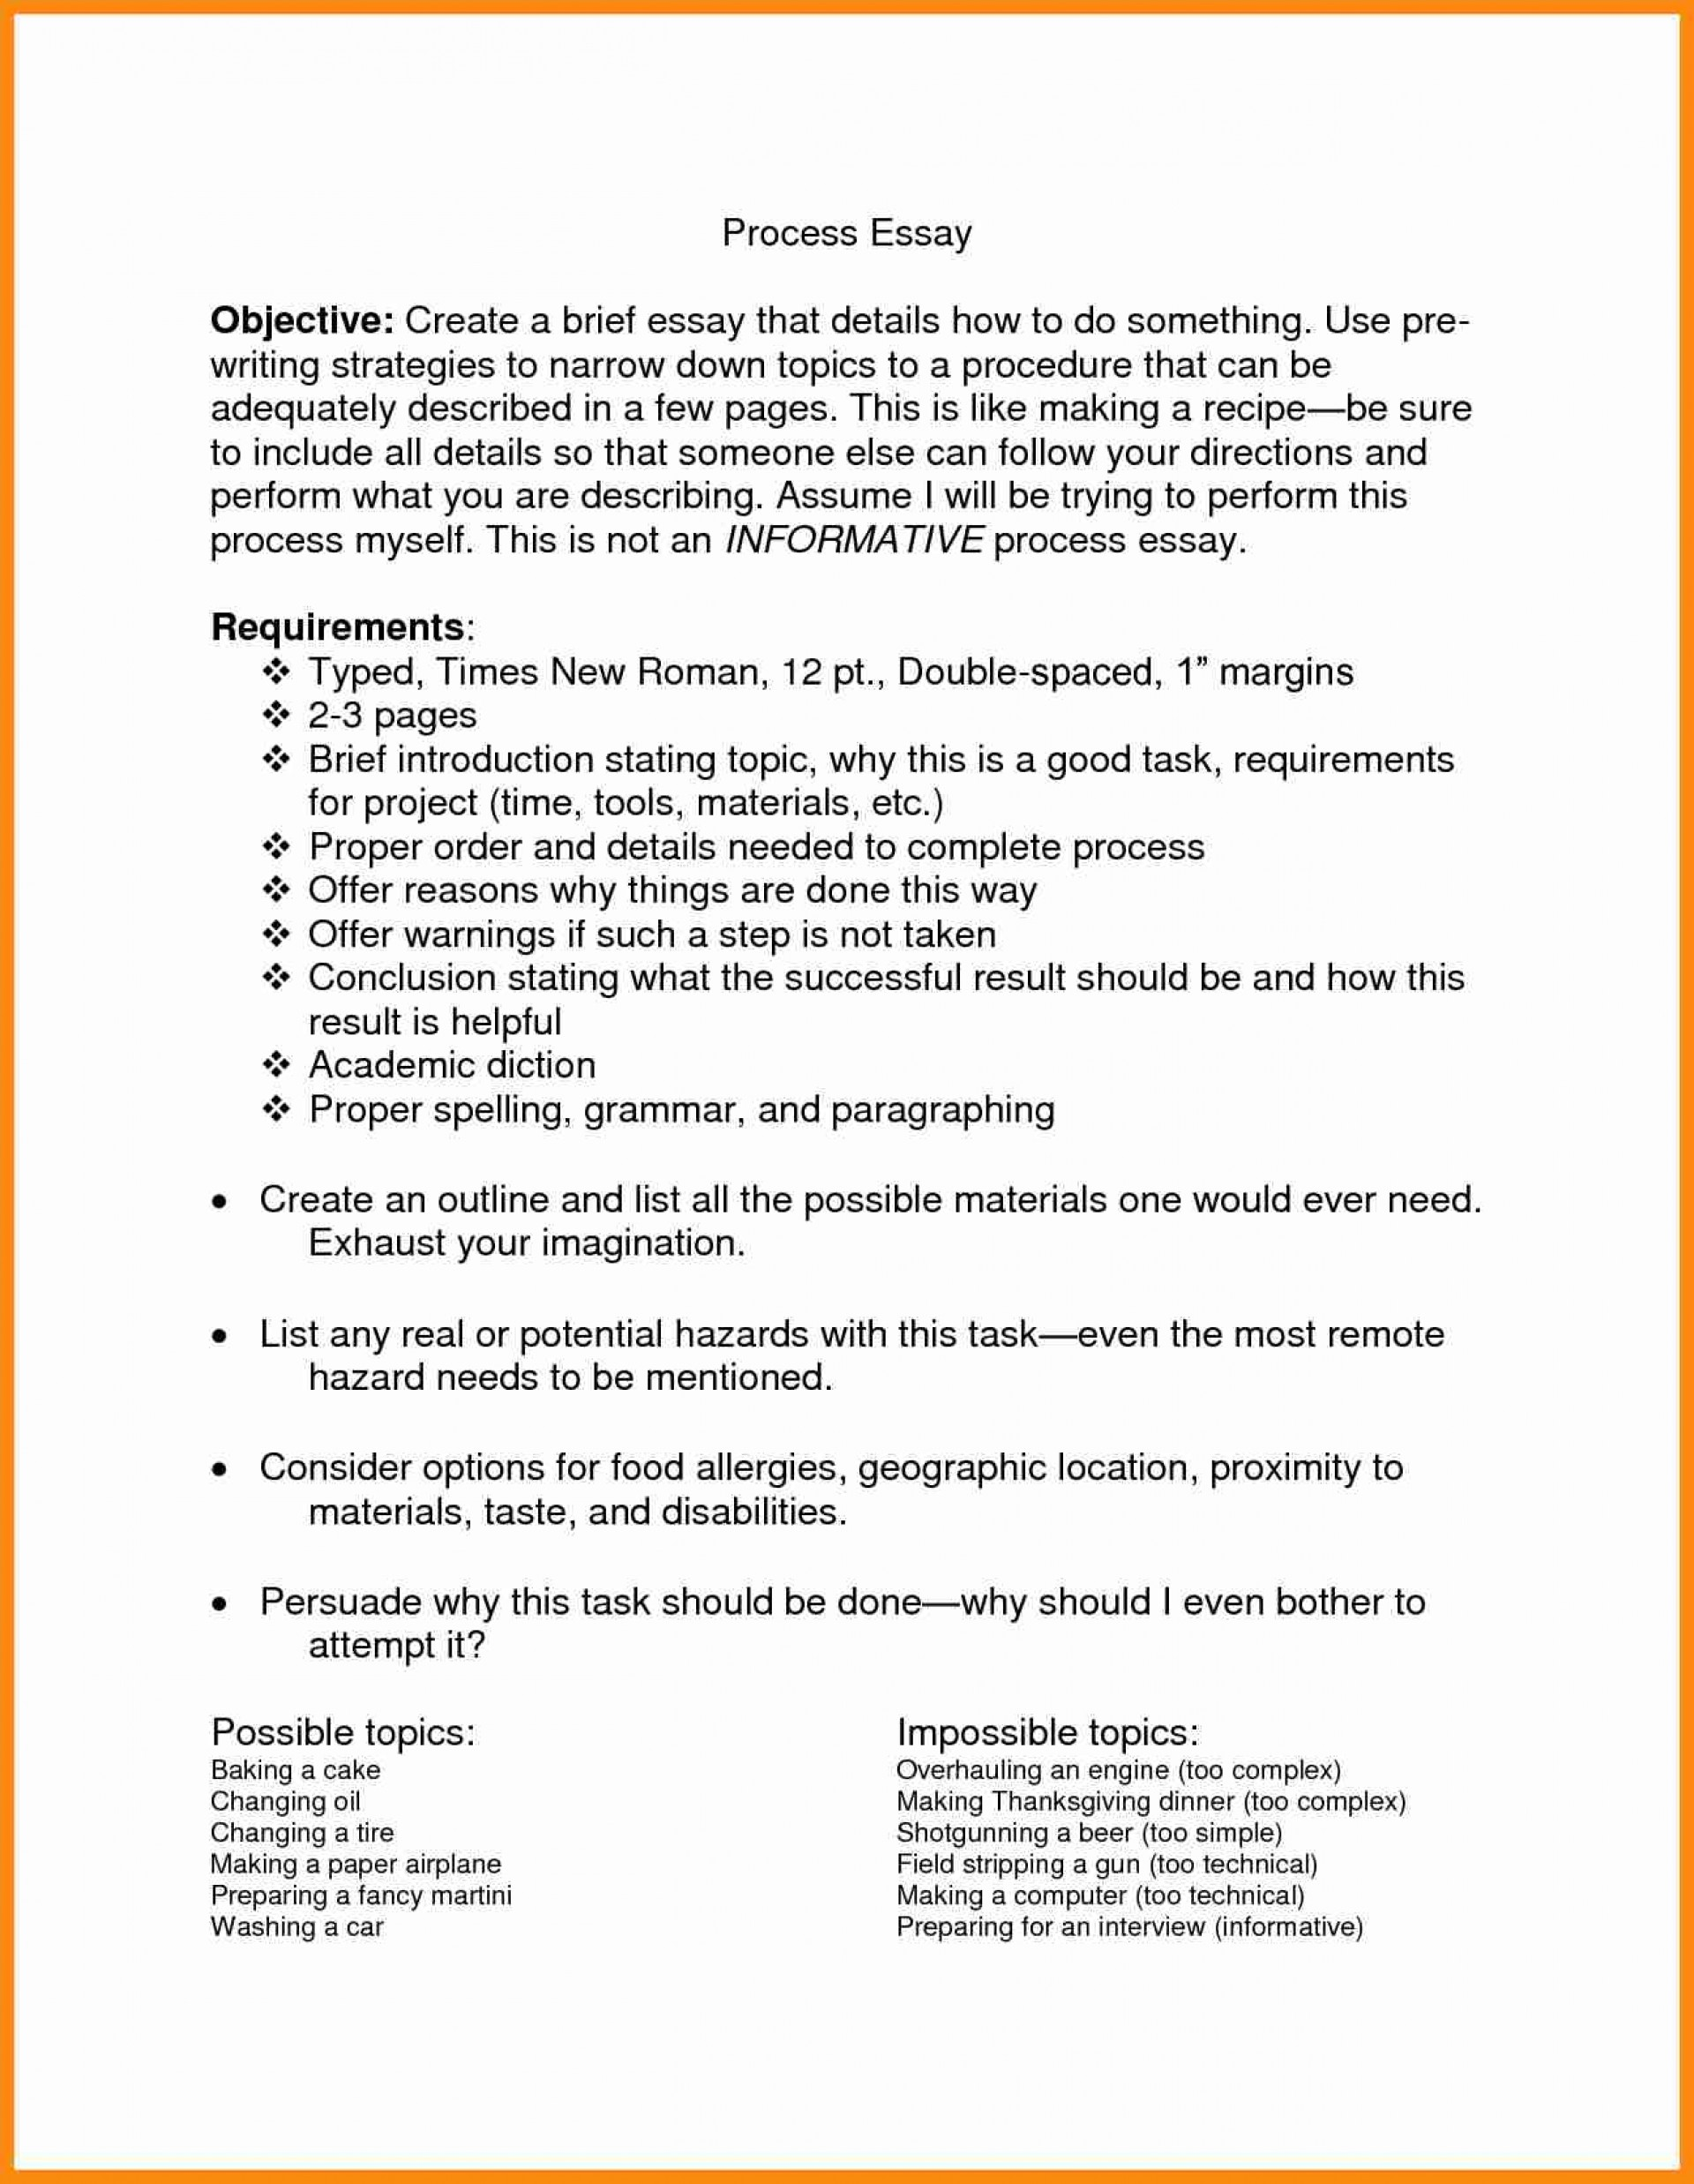 009 Informational Essay Outline Bestolutions Of Example Explanatoryample Career Interview Awesome Collection Process Essaysamples Unforgettable Rubric 4th Grade Informative Explanatory Definition 1920